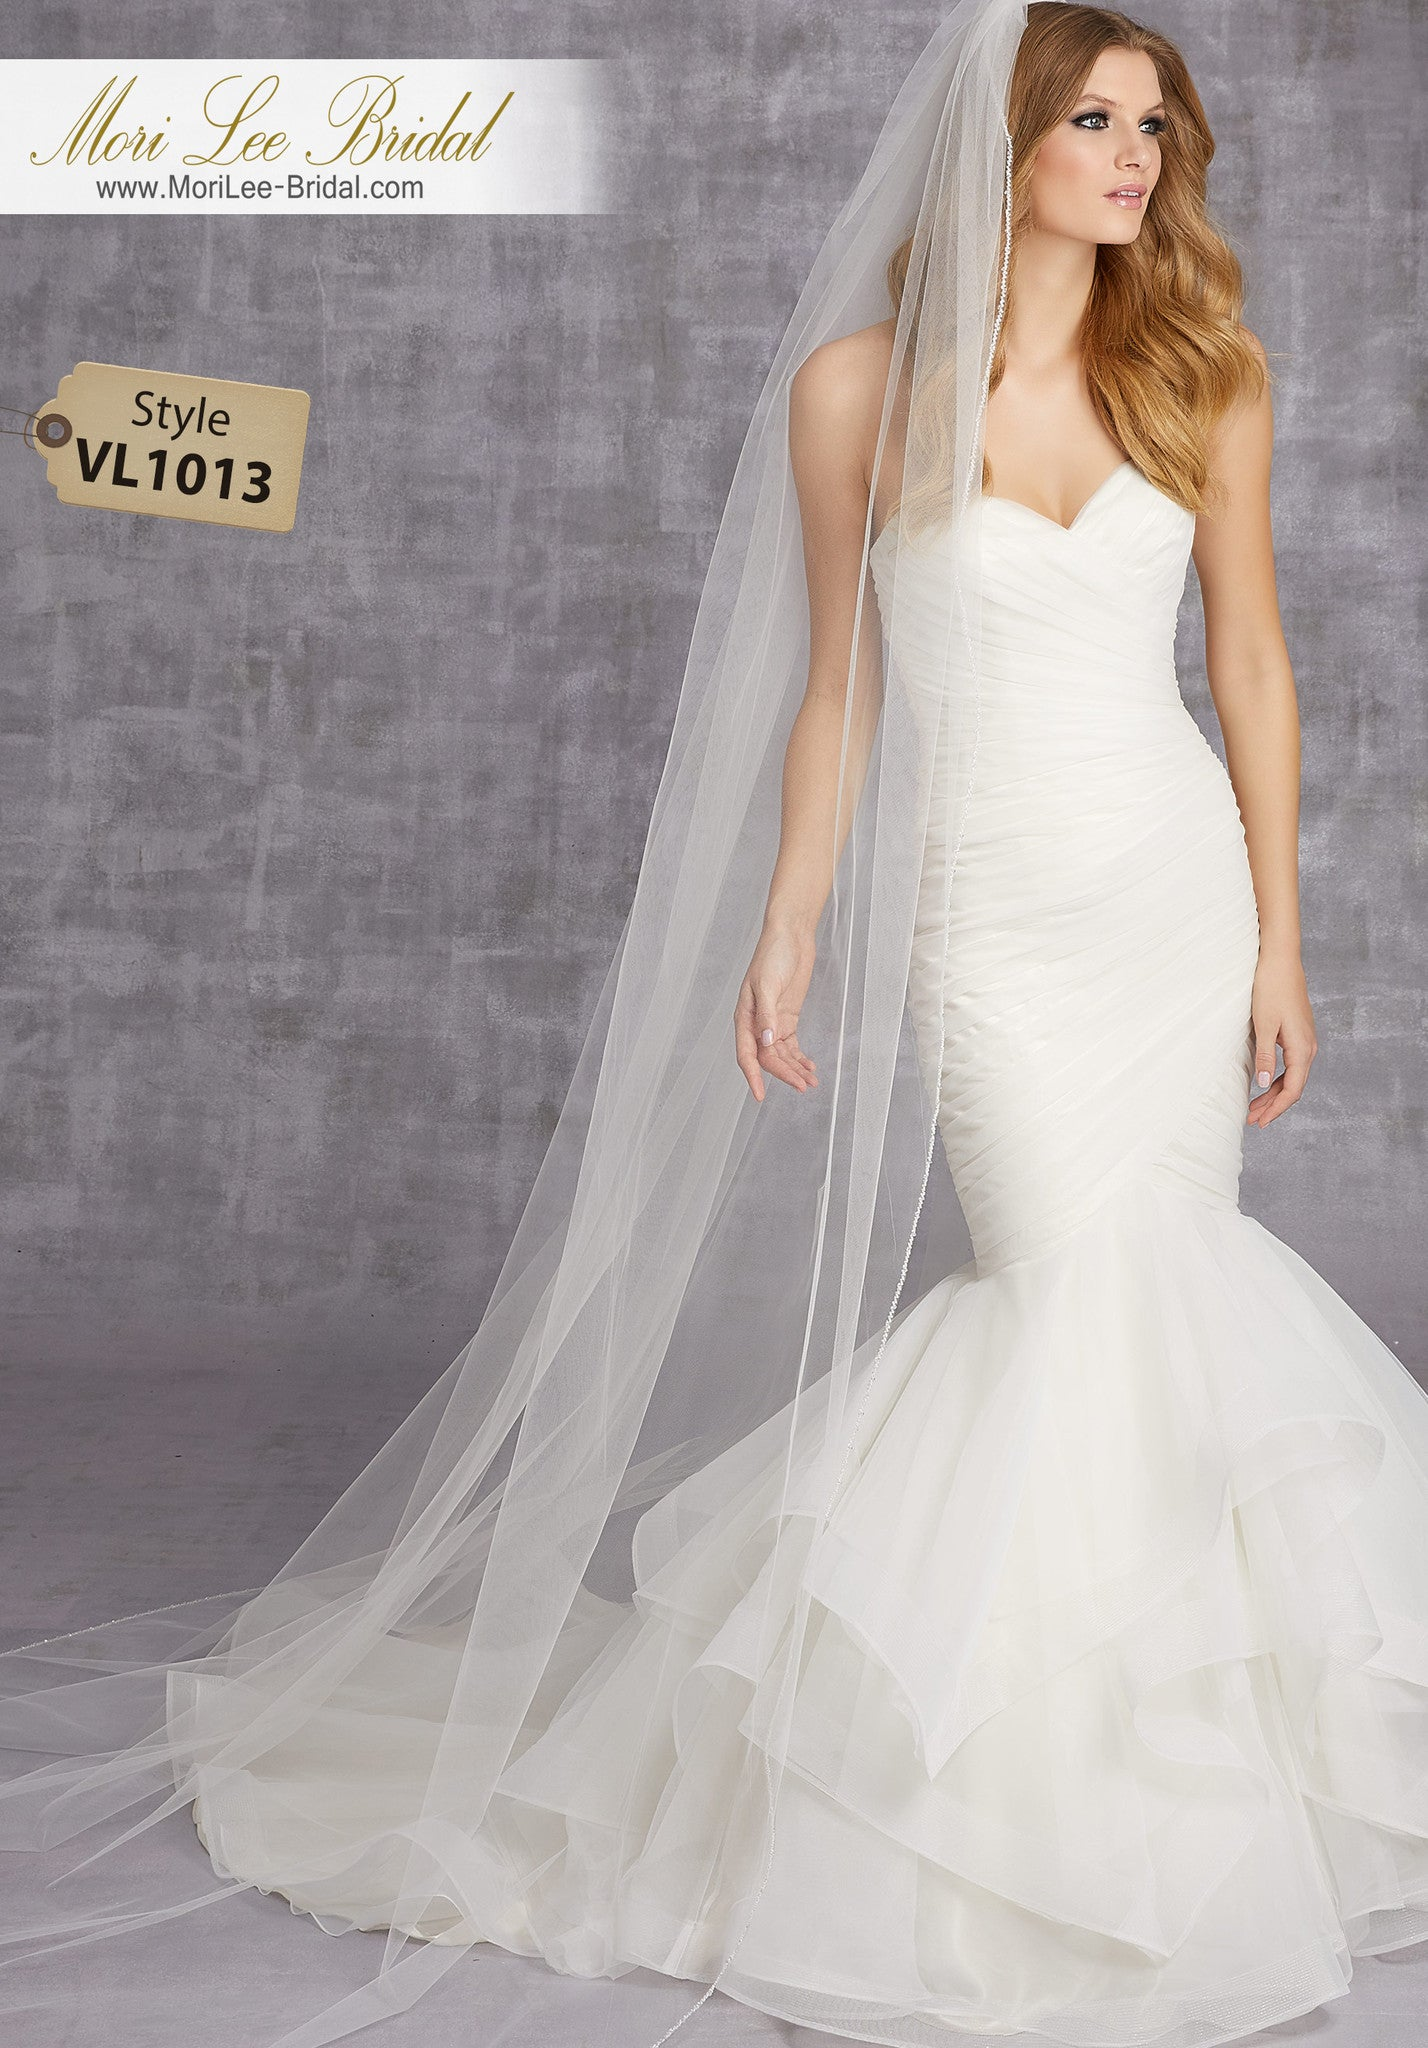 VL1013C - Mori Lee Bridal